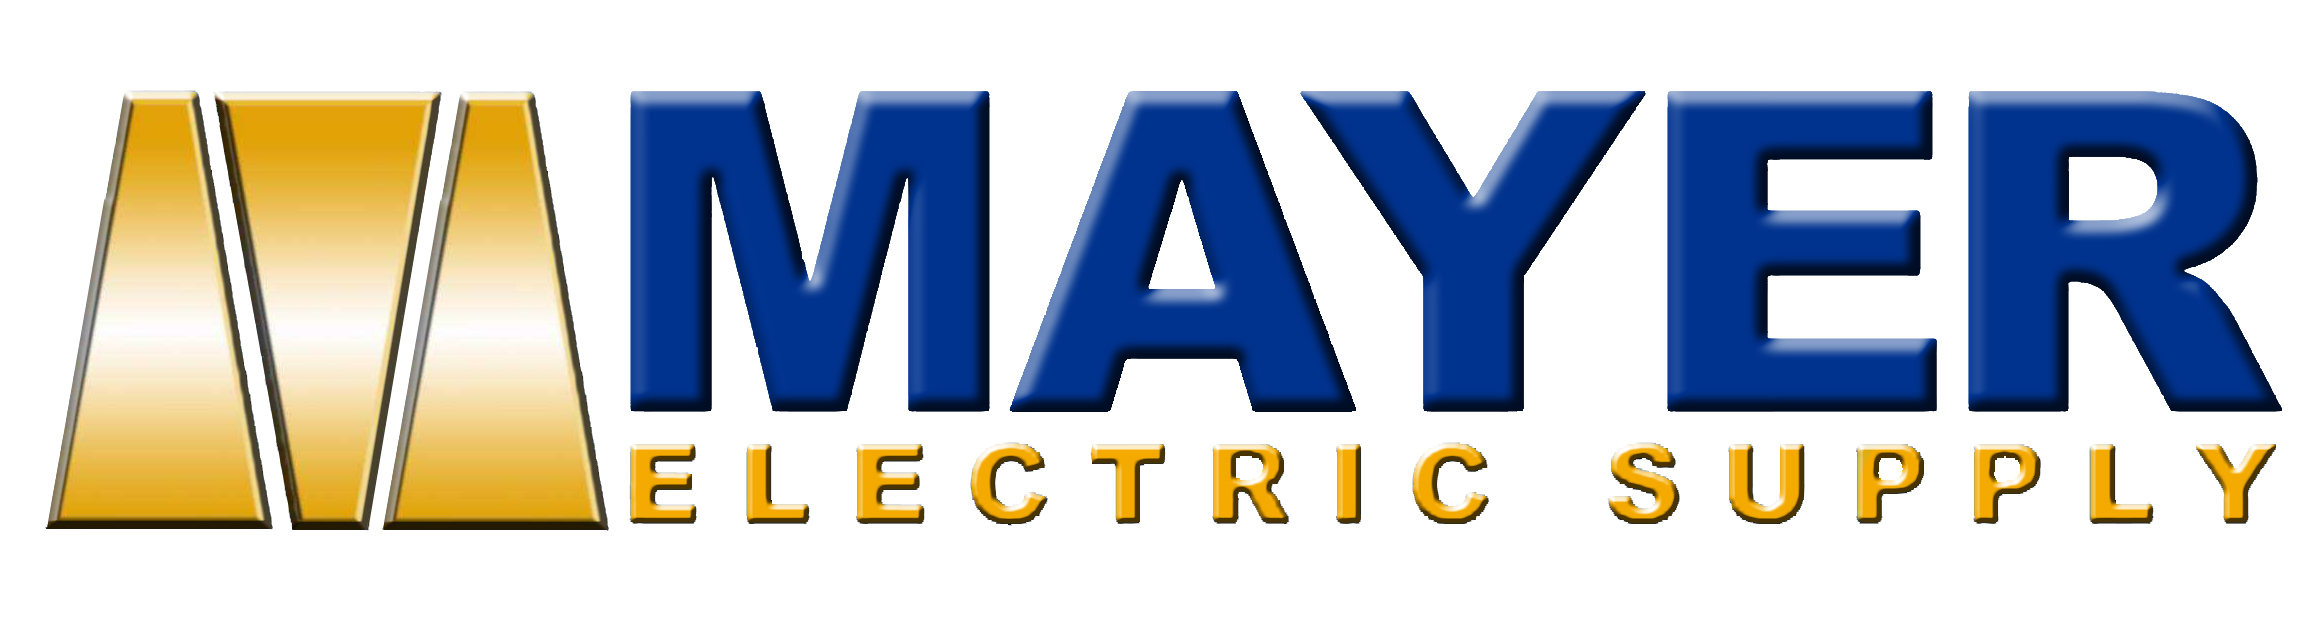 Mayer Electric Supply Co., Inc. in Decatur, AL. Distributor of industrial, commercial & residential electrical equipment & supplies, including lighting, tools, communication products & factory automation equipment.